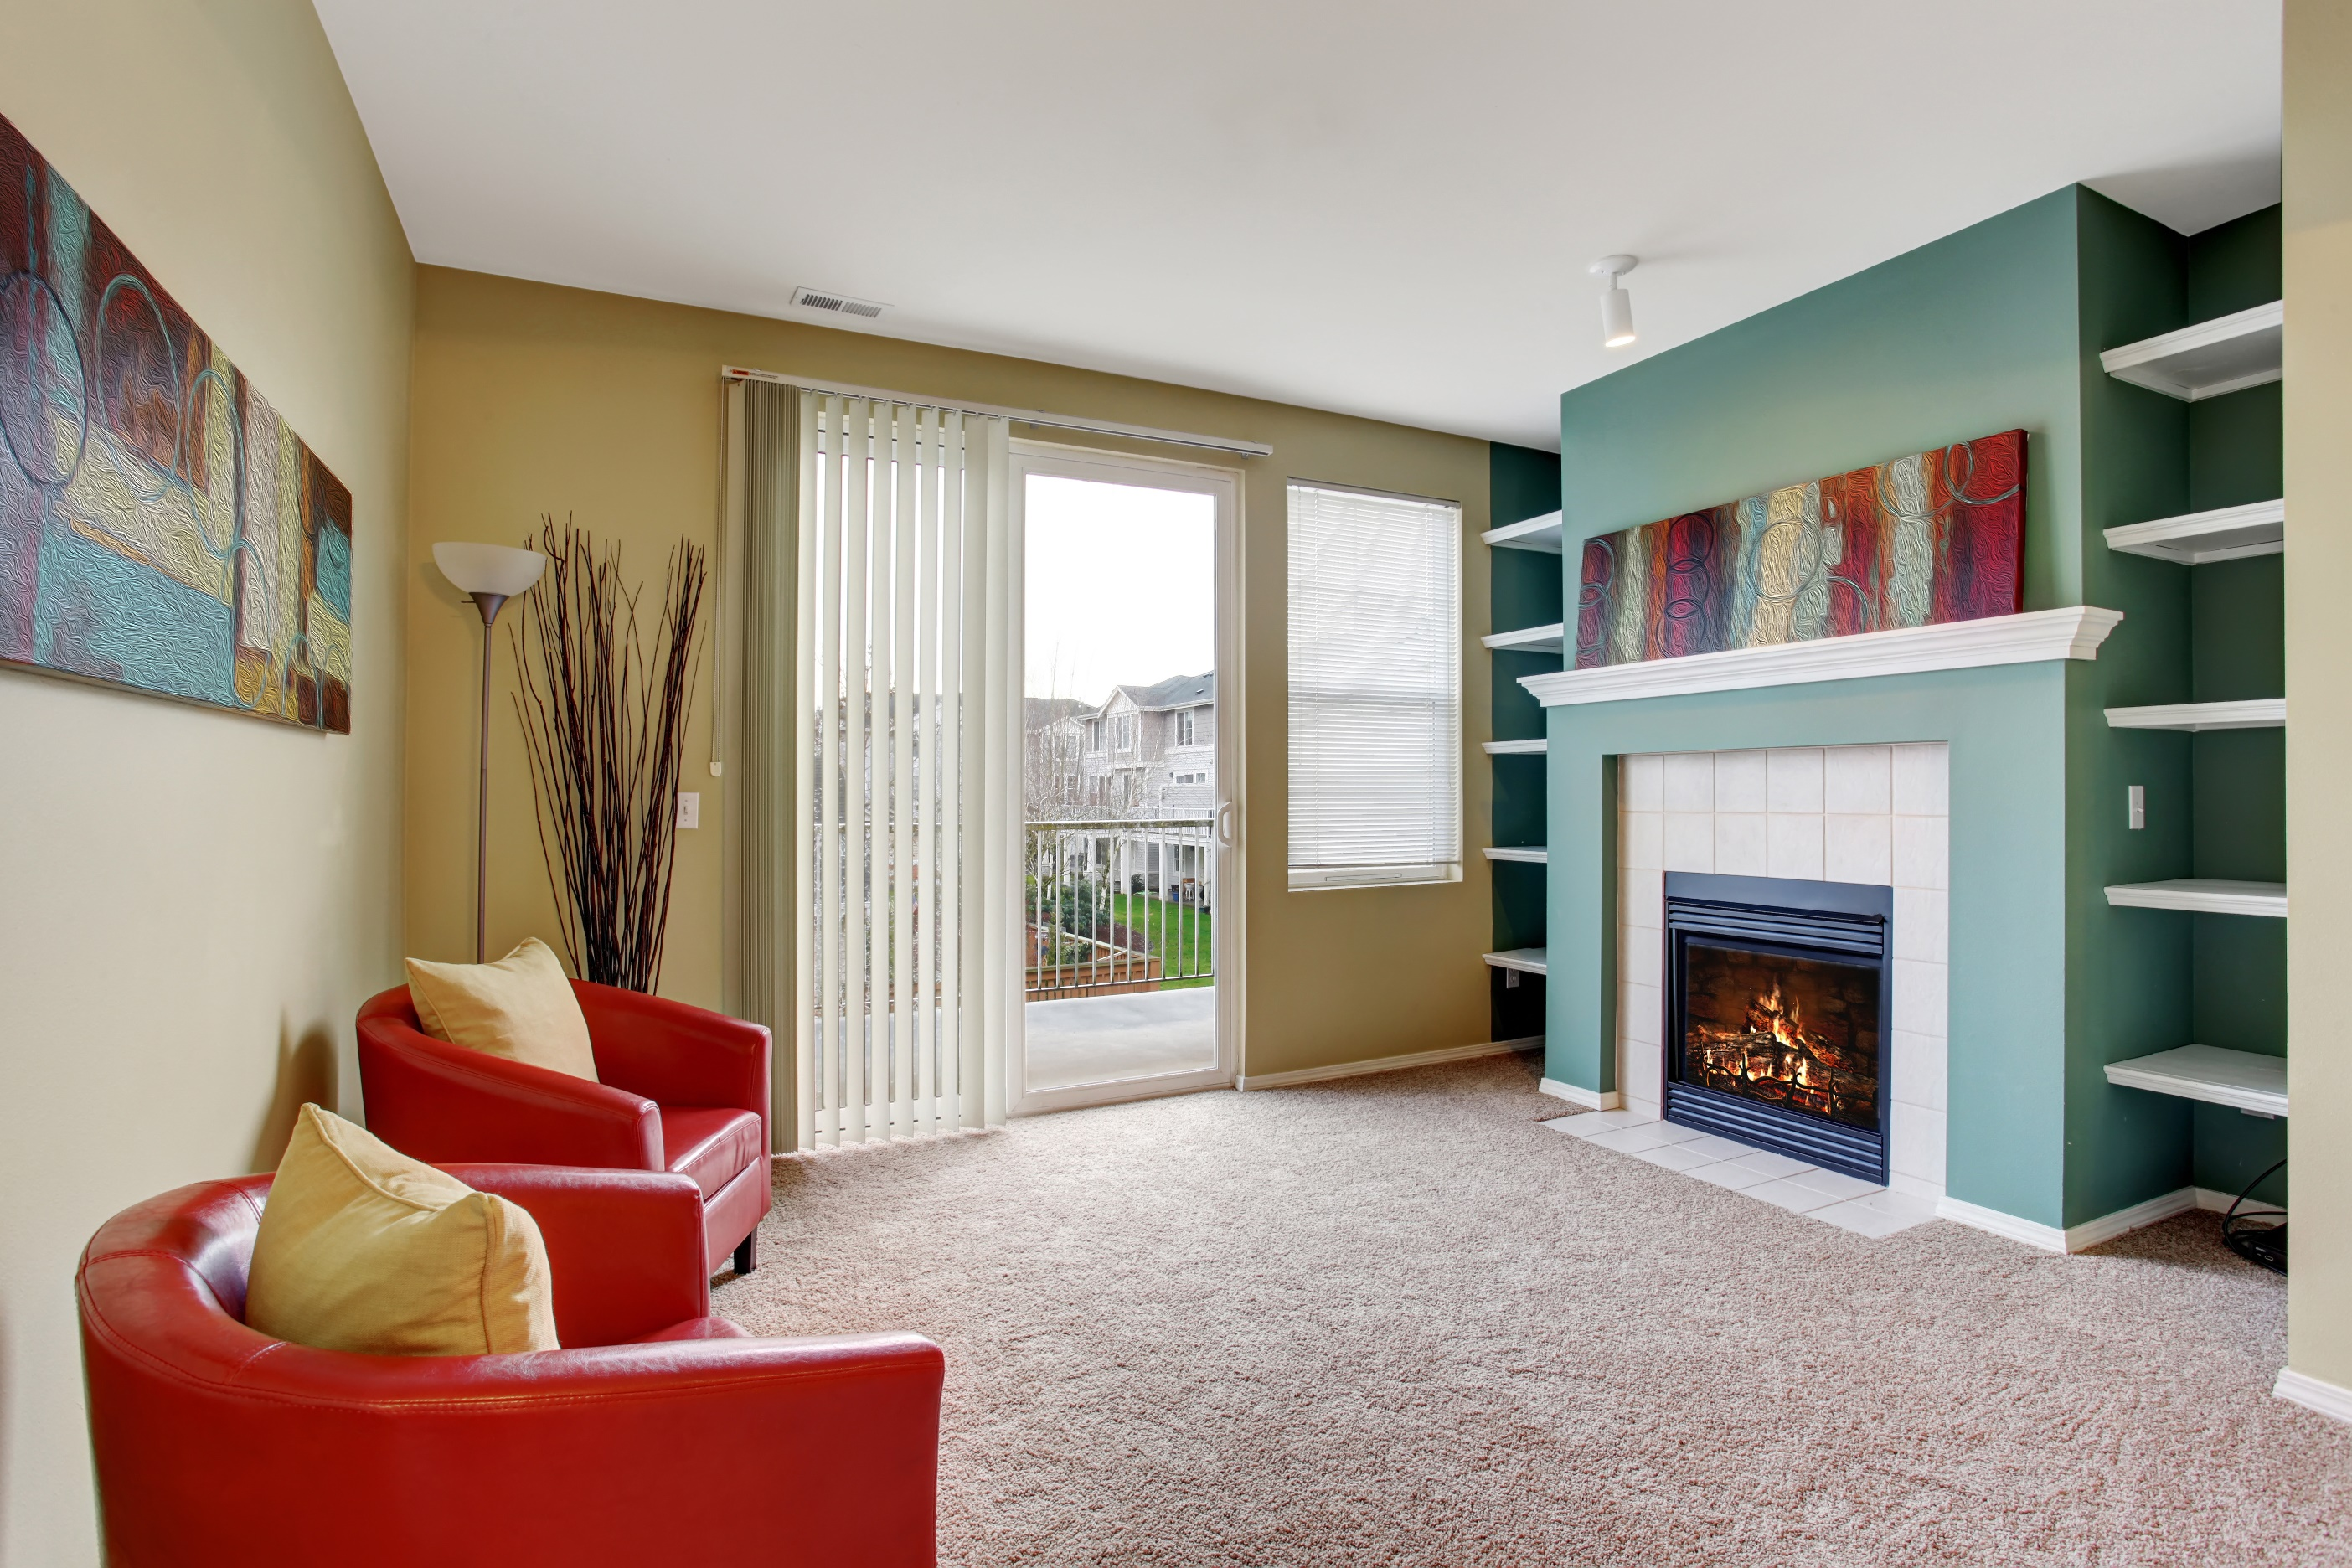 Nice living room with carpet, and fireplace.